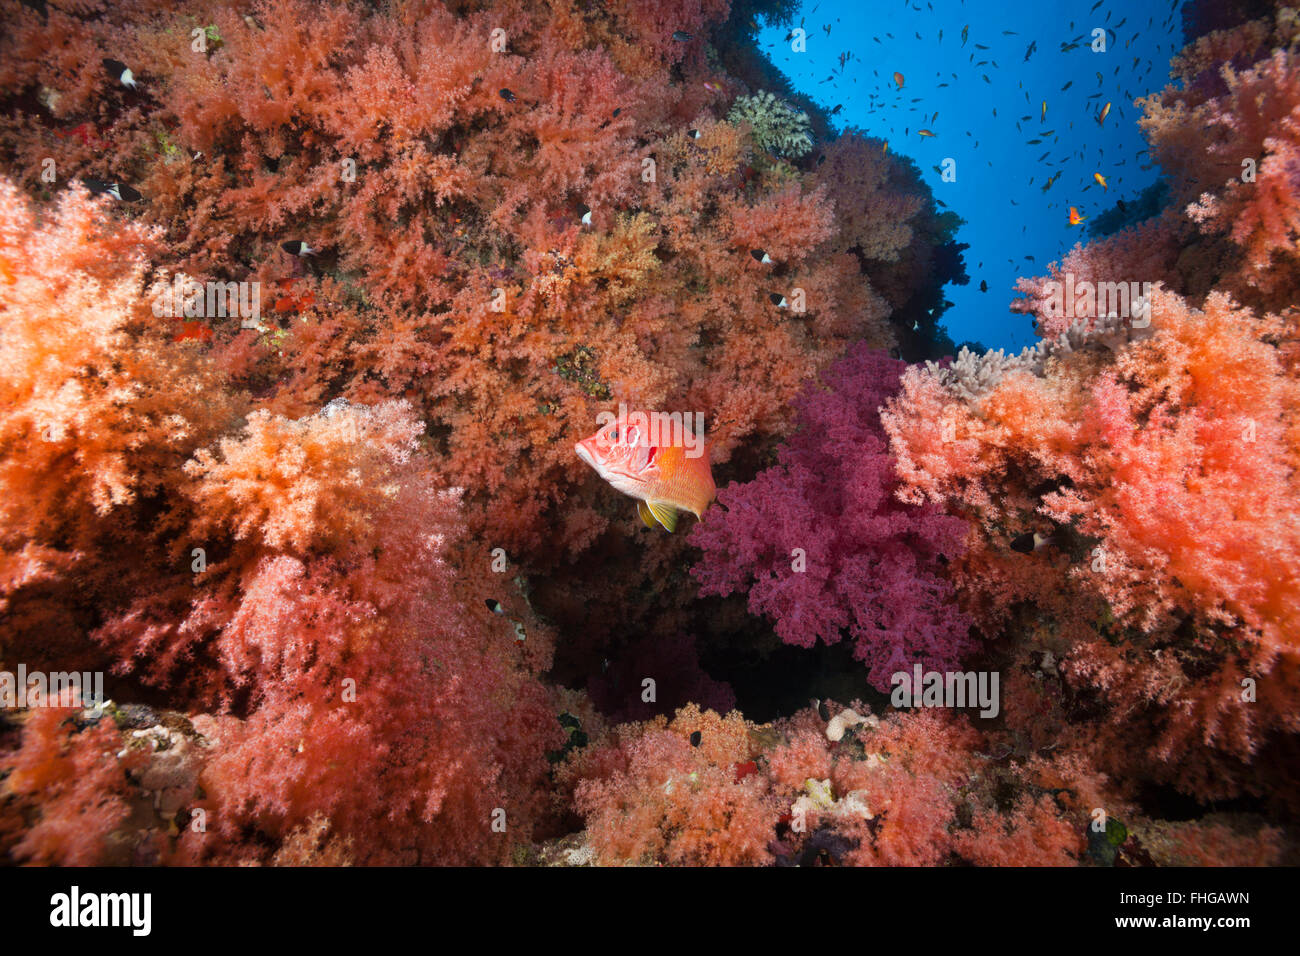 Colored Soft Coral Reef, Red Sea, Ras Mohammed, Egypt - Stock Image